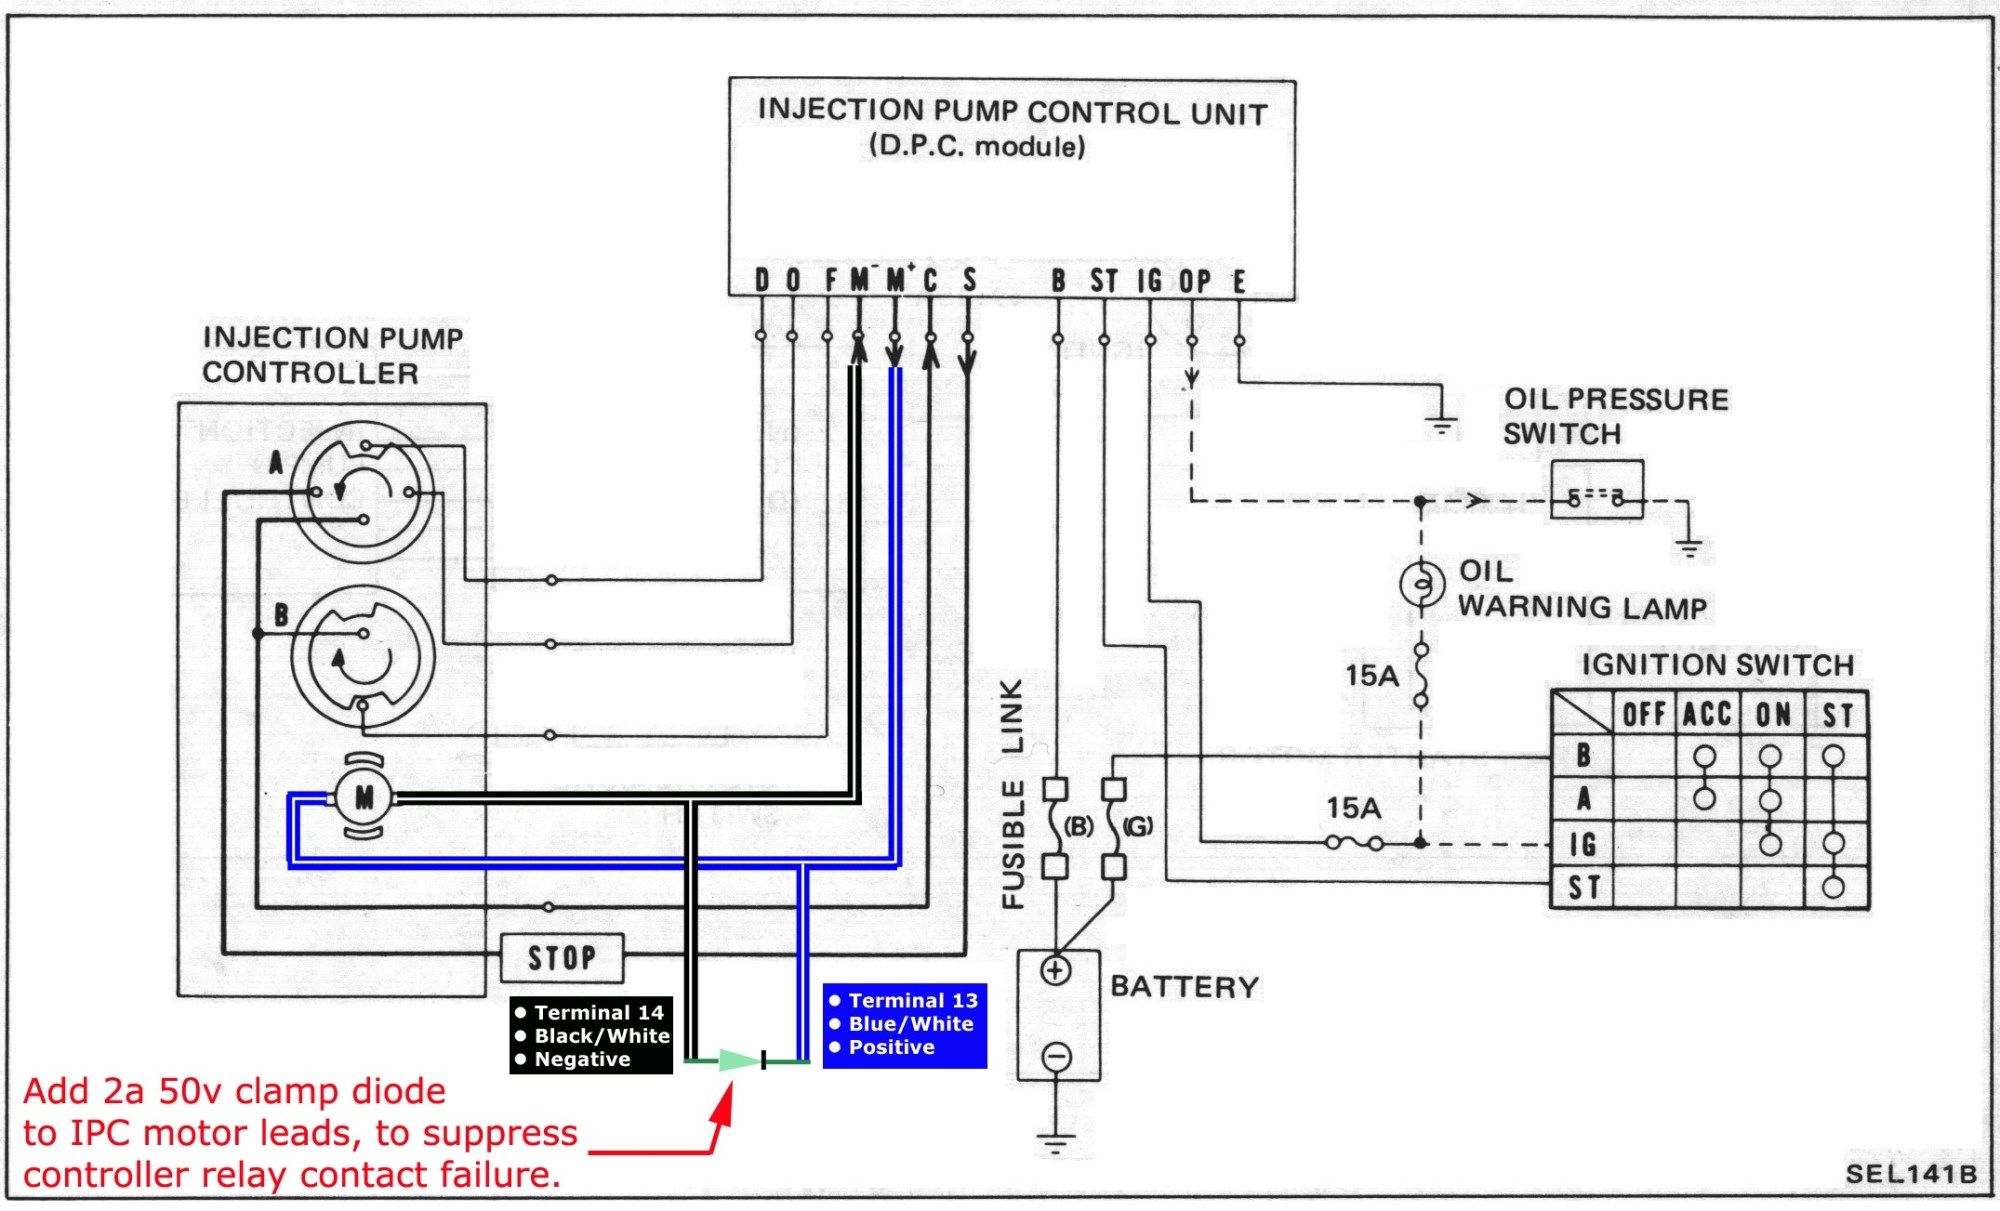 hight resolution of nissandiesel forums u2022 view topic dpc module injection pump rh nissandiesel dyndns org ford 3000 tractor wiring diagram ford 4000 diesel wiring diagram